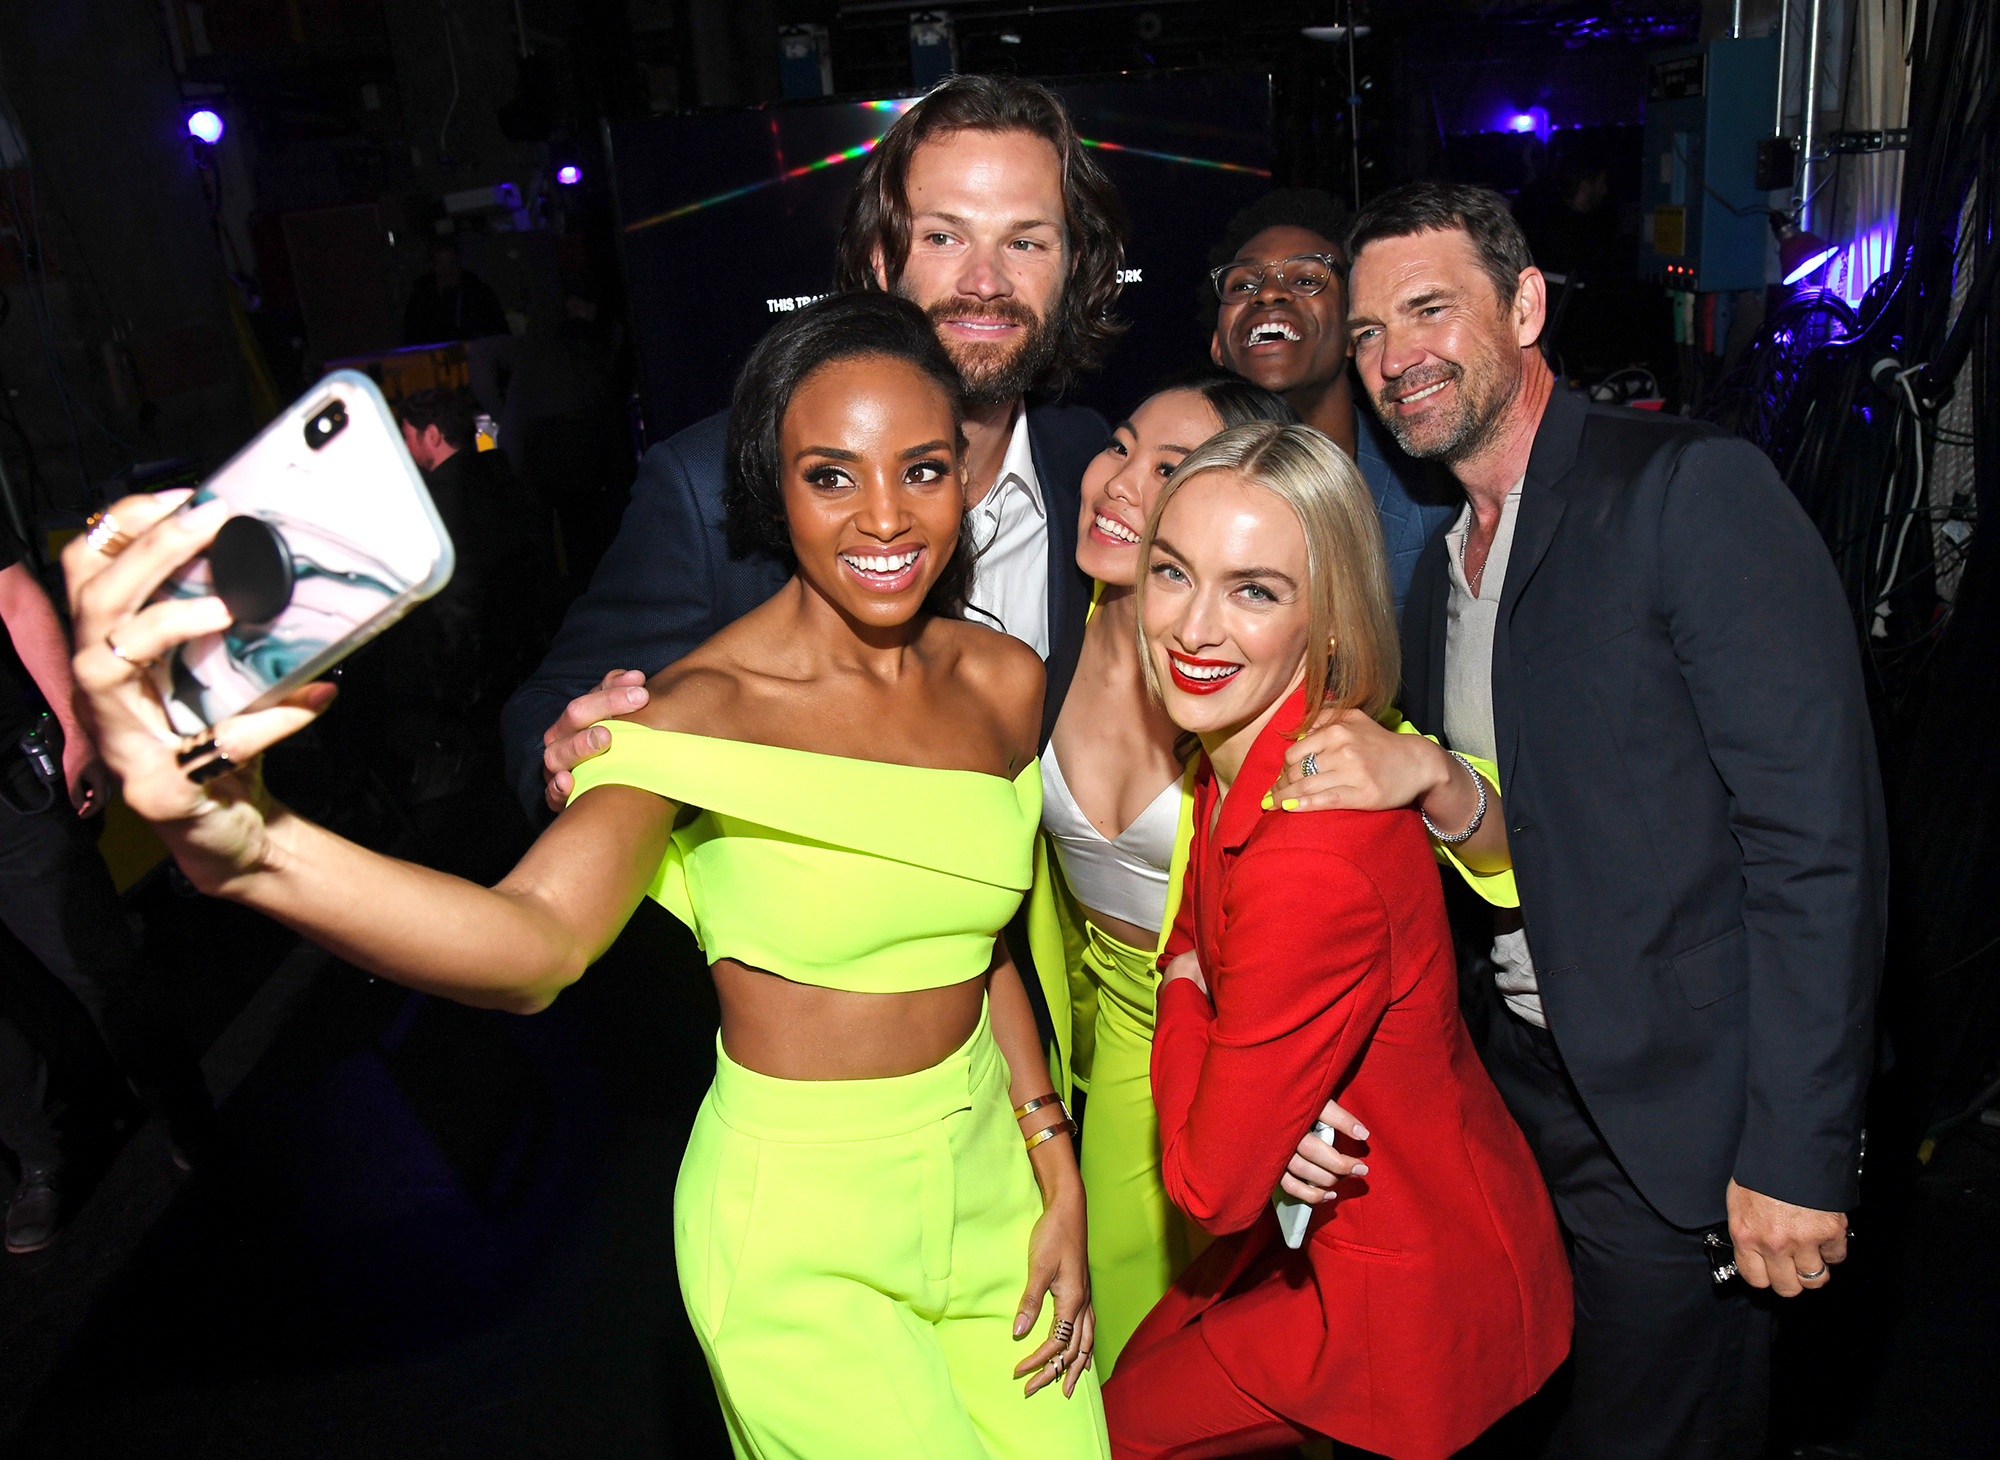 NEW YORK, NEW YORK - MAY 16: (L-R) Meagan Tandy, Jared Padalecki, Nicole Kang, Camrus Johnson, Elizabeth Anweis, and Rachel Skarsten, Dougray Scott pose backstage during the The CW Network 2019 Upfronts at New York City Center on May 16, 2019 in New York City. (Photo by Kevin Mazur/Getty Images for The CW Network)